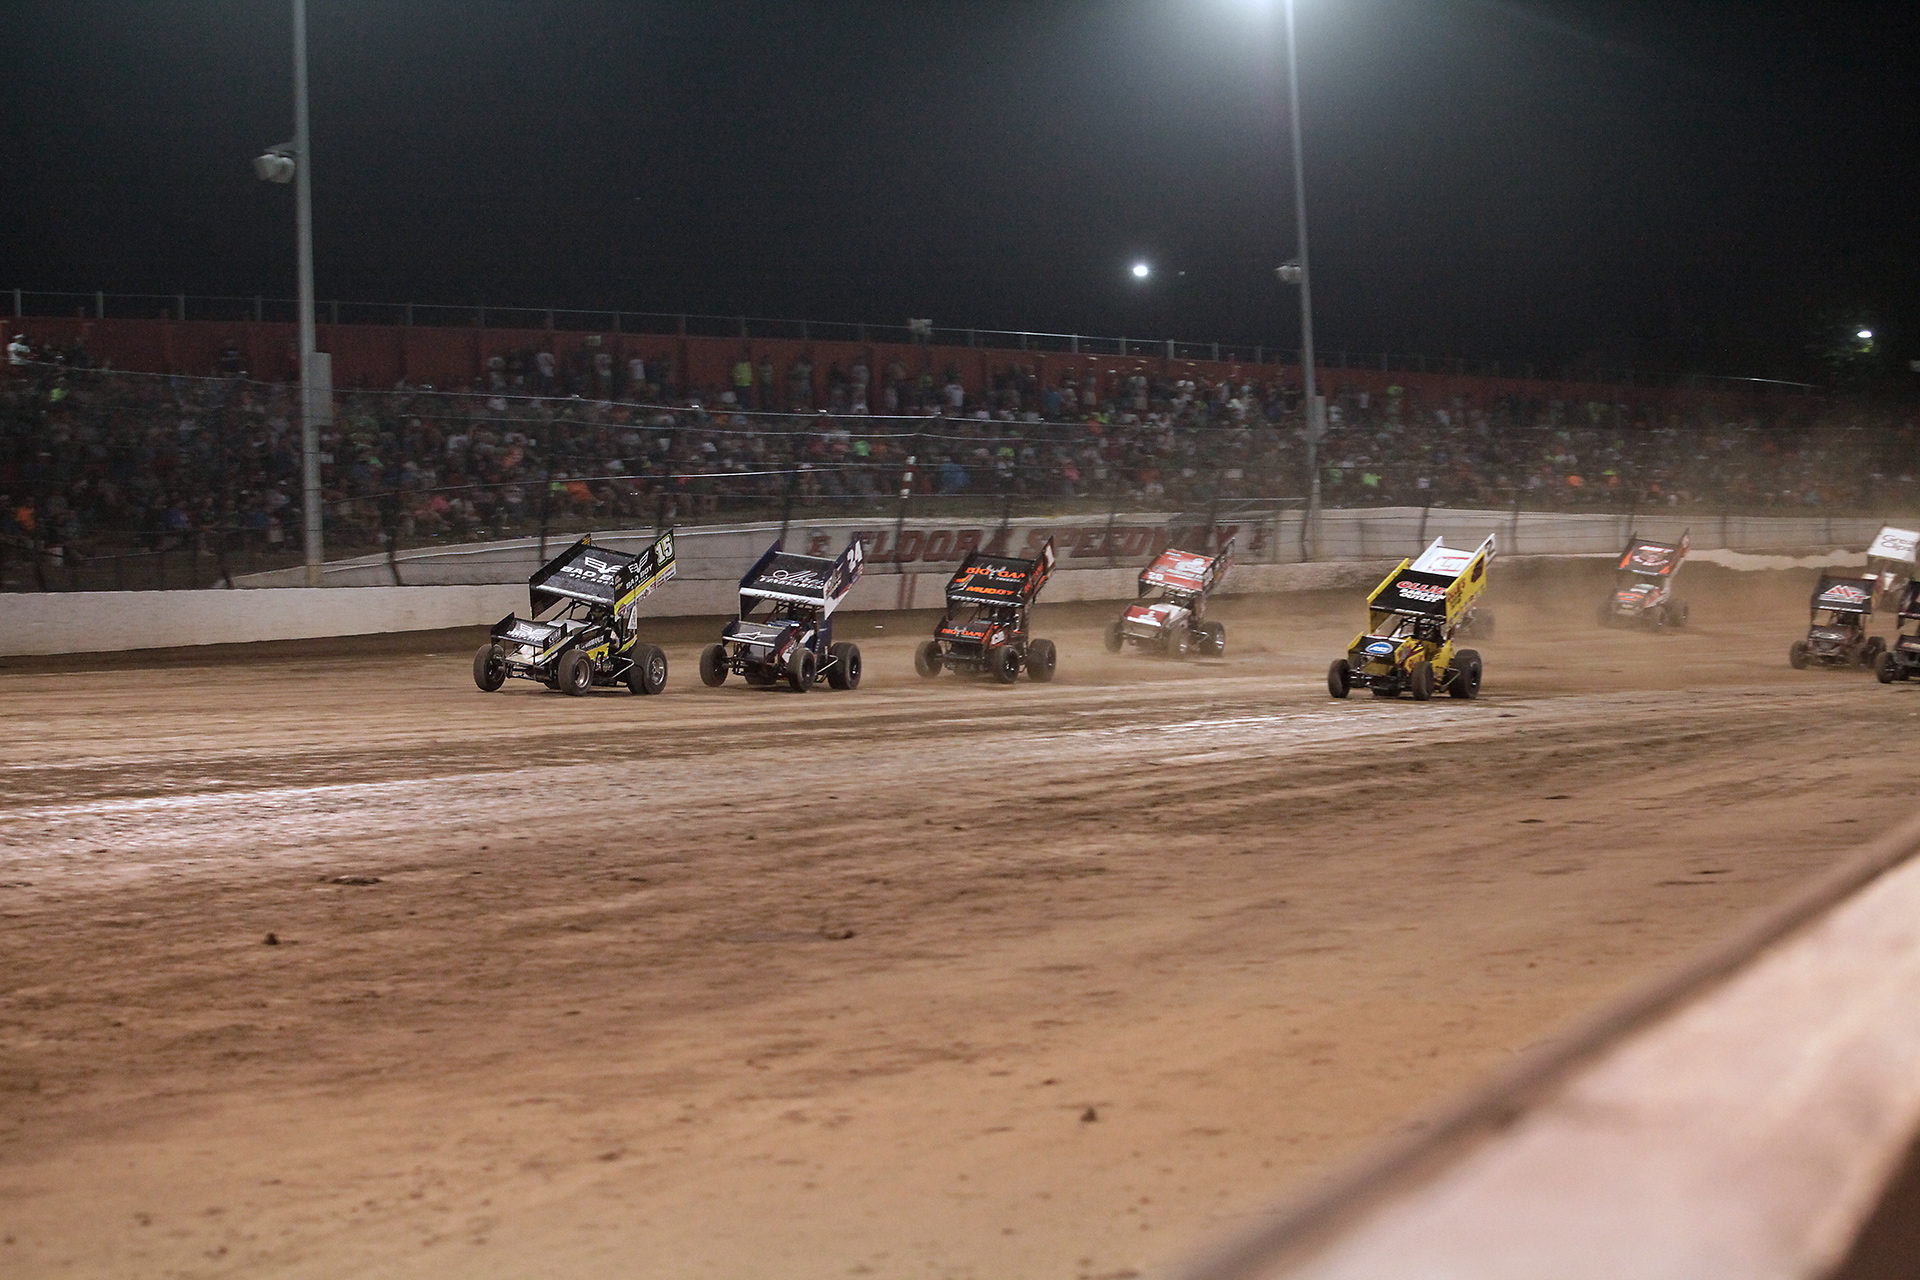 Donny Schatz leading the field into turn 1 at the last restart before the checkered. ( Jeffrey Turford / TDP )